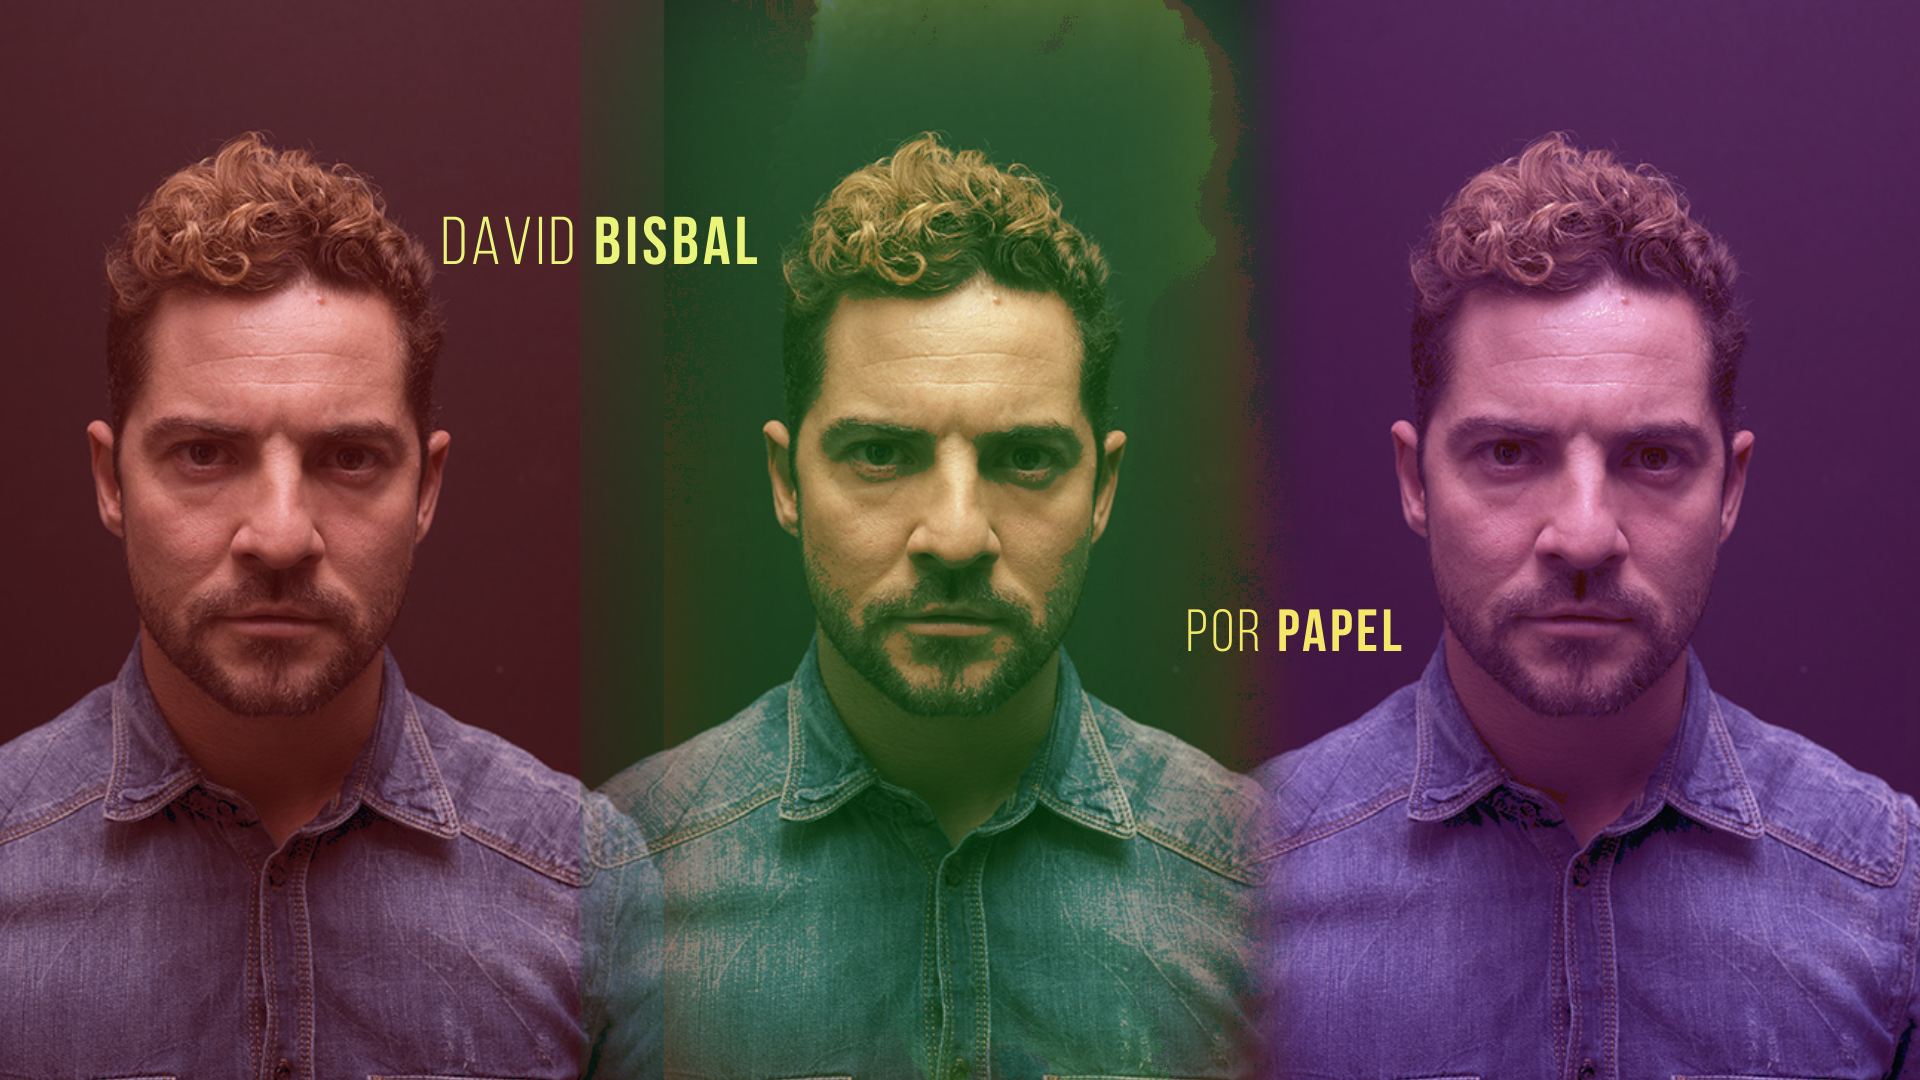 La Voz Libre David Bisbal Video